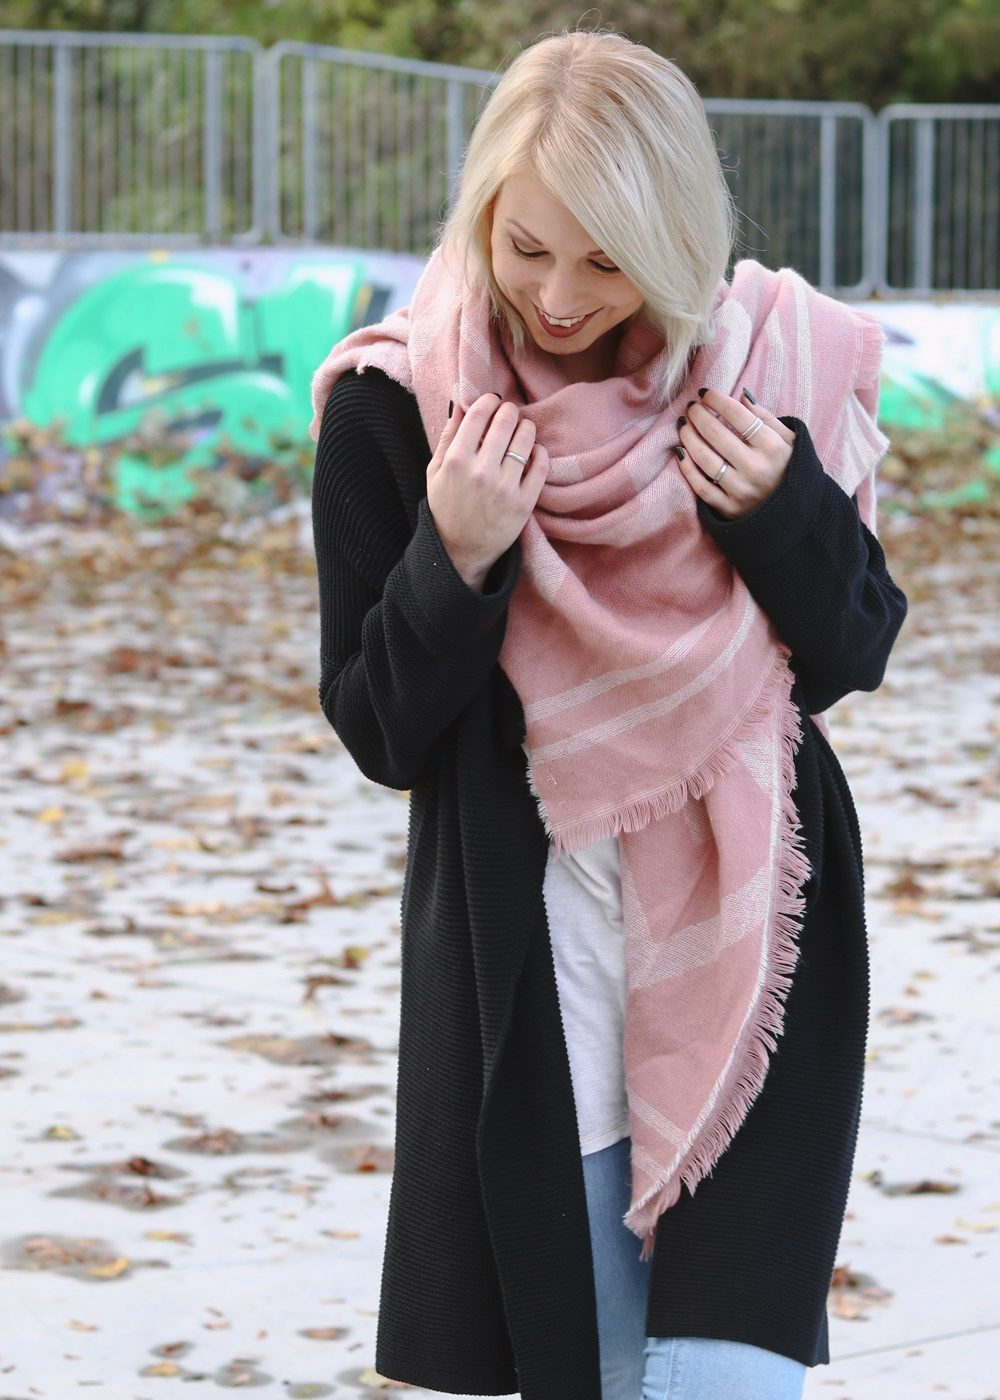 modeblogger-karlsruhe-outfit-herbst-skinnyjeans-rosa-schal-strickcardigan-reebok-classics-pearlized-metallic-11